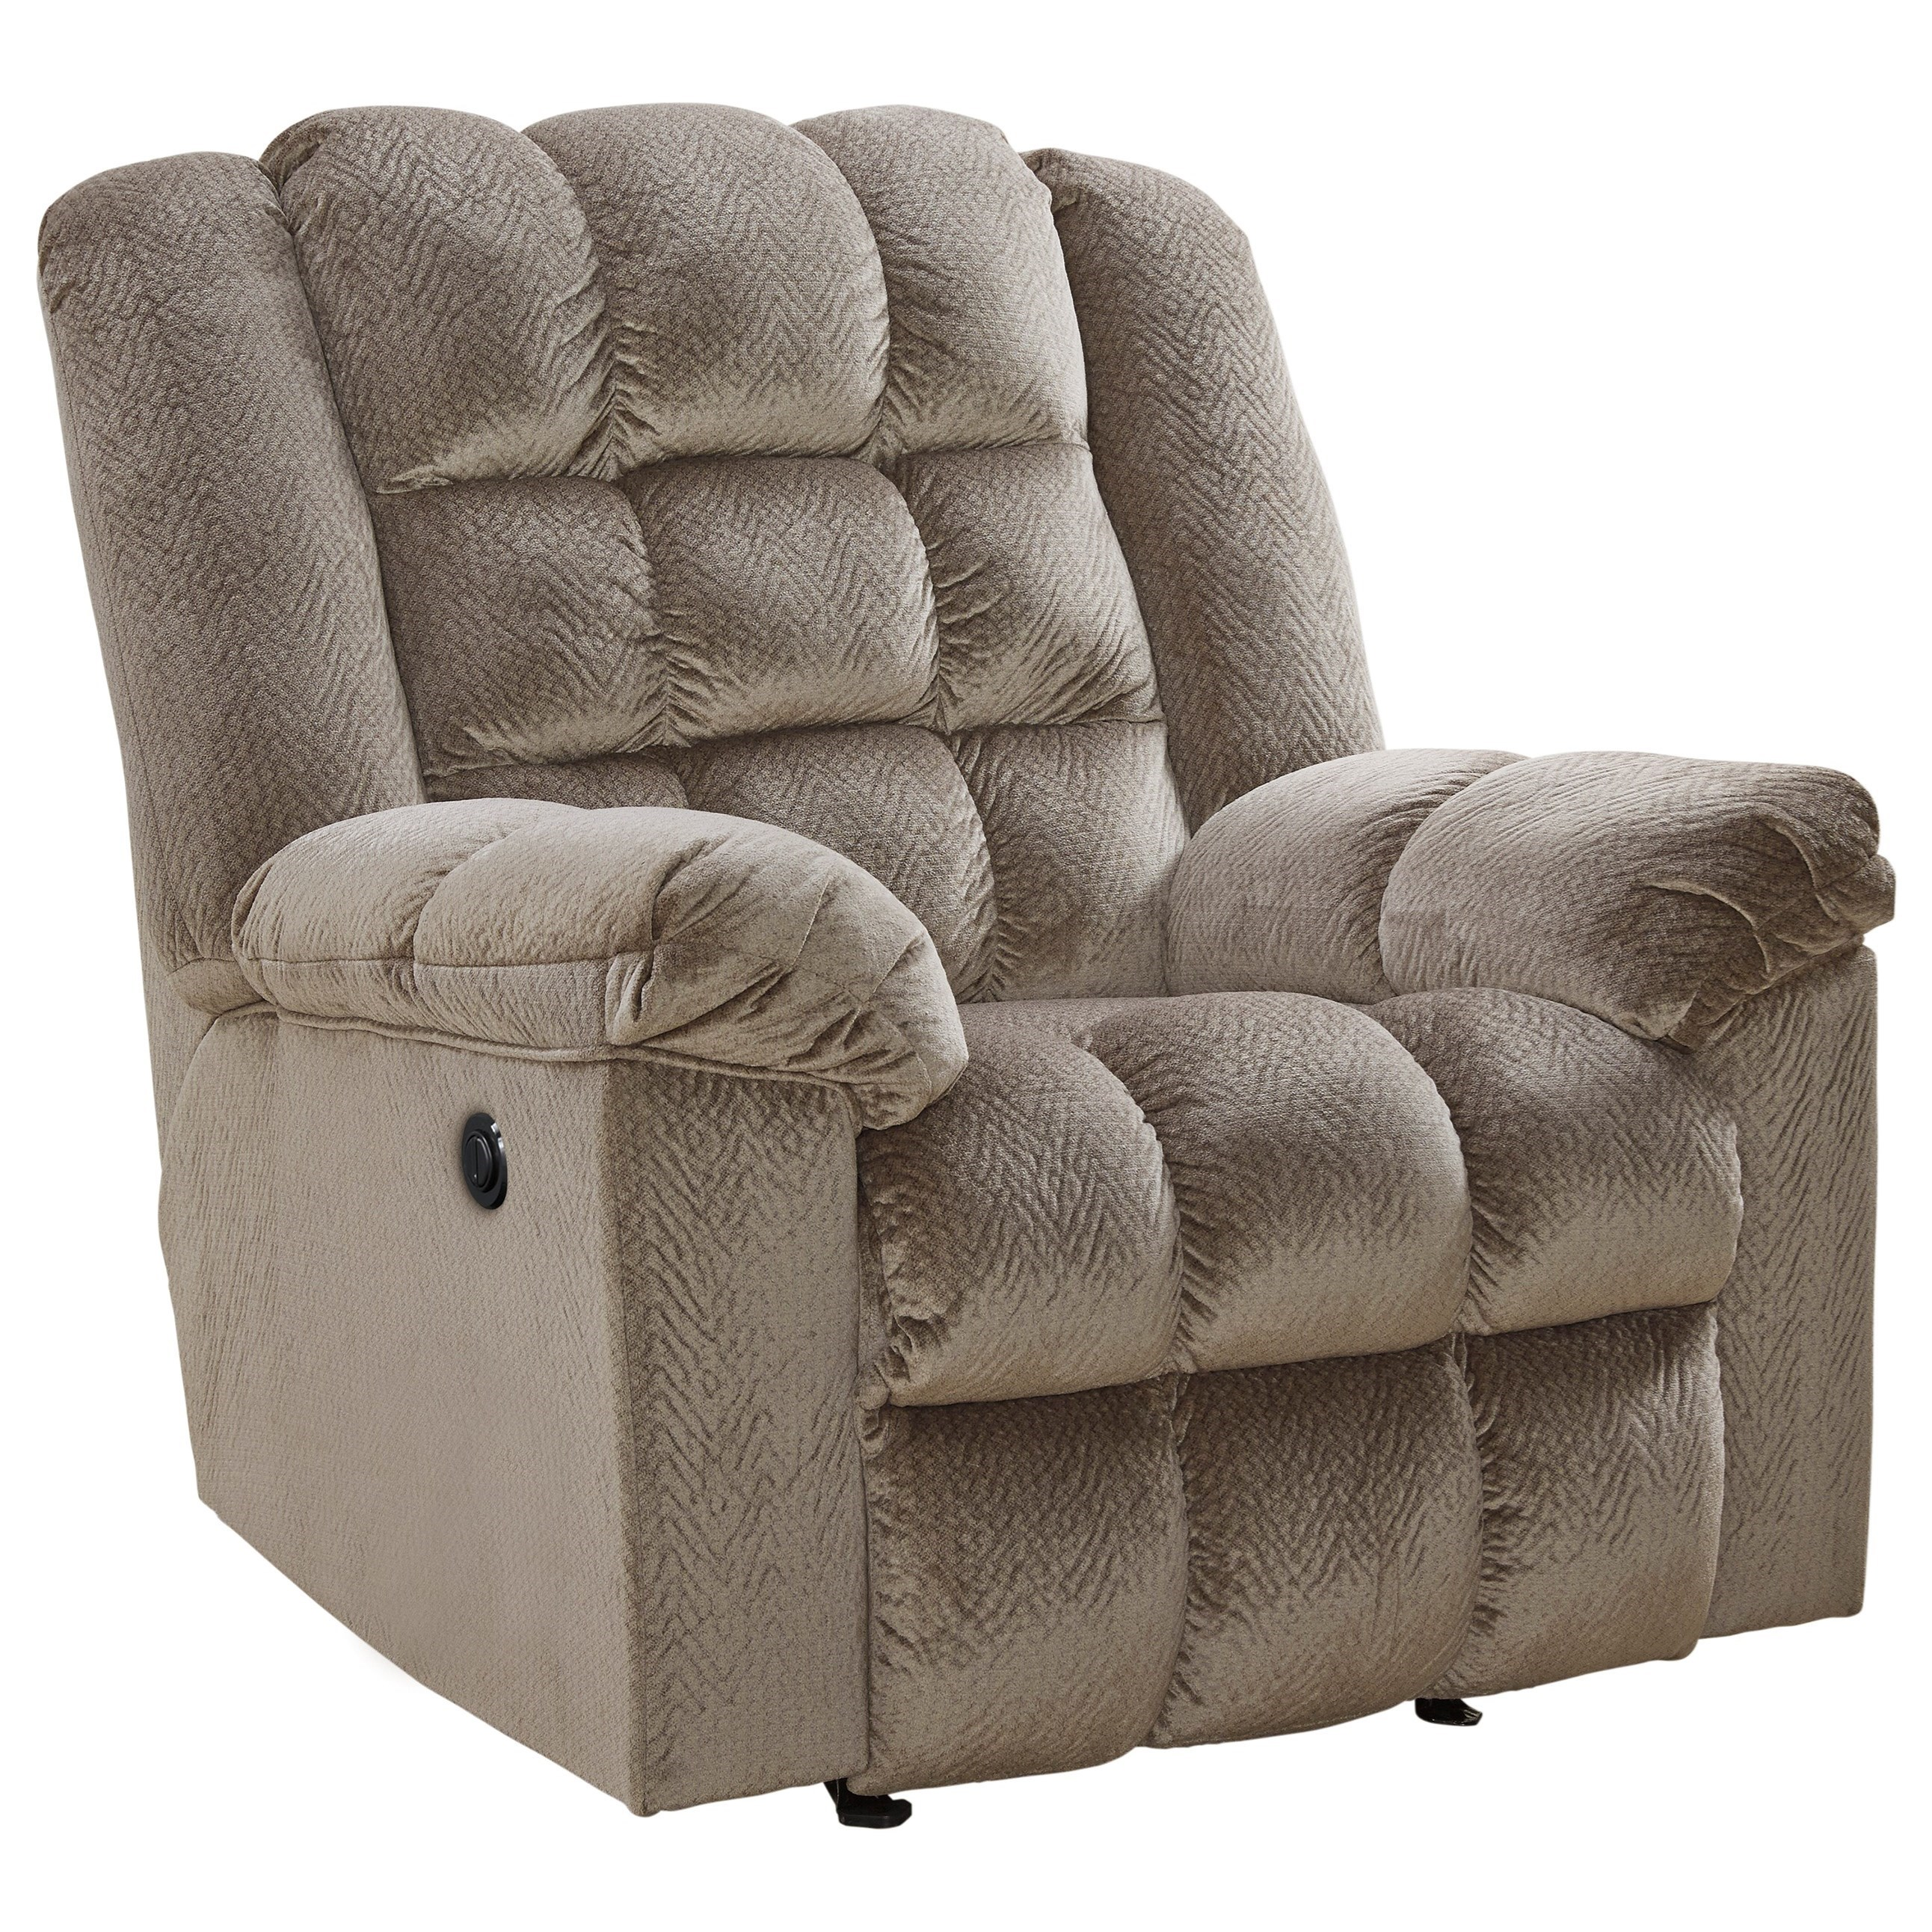 Signature Design by Ashley Minturn  Power Rocker Recliner - Item Number: 3710498